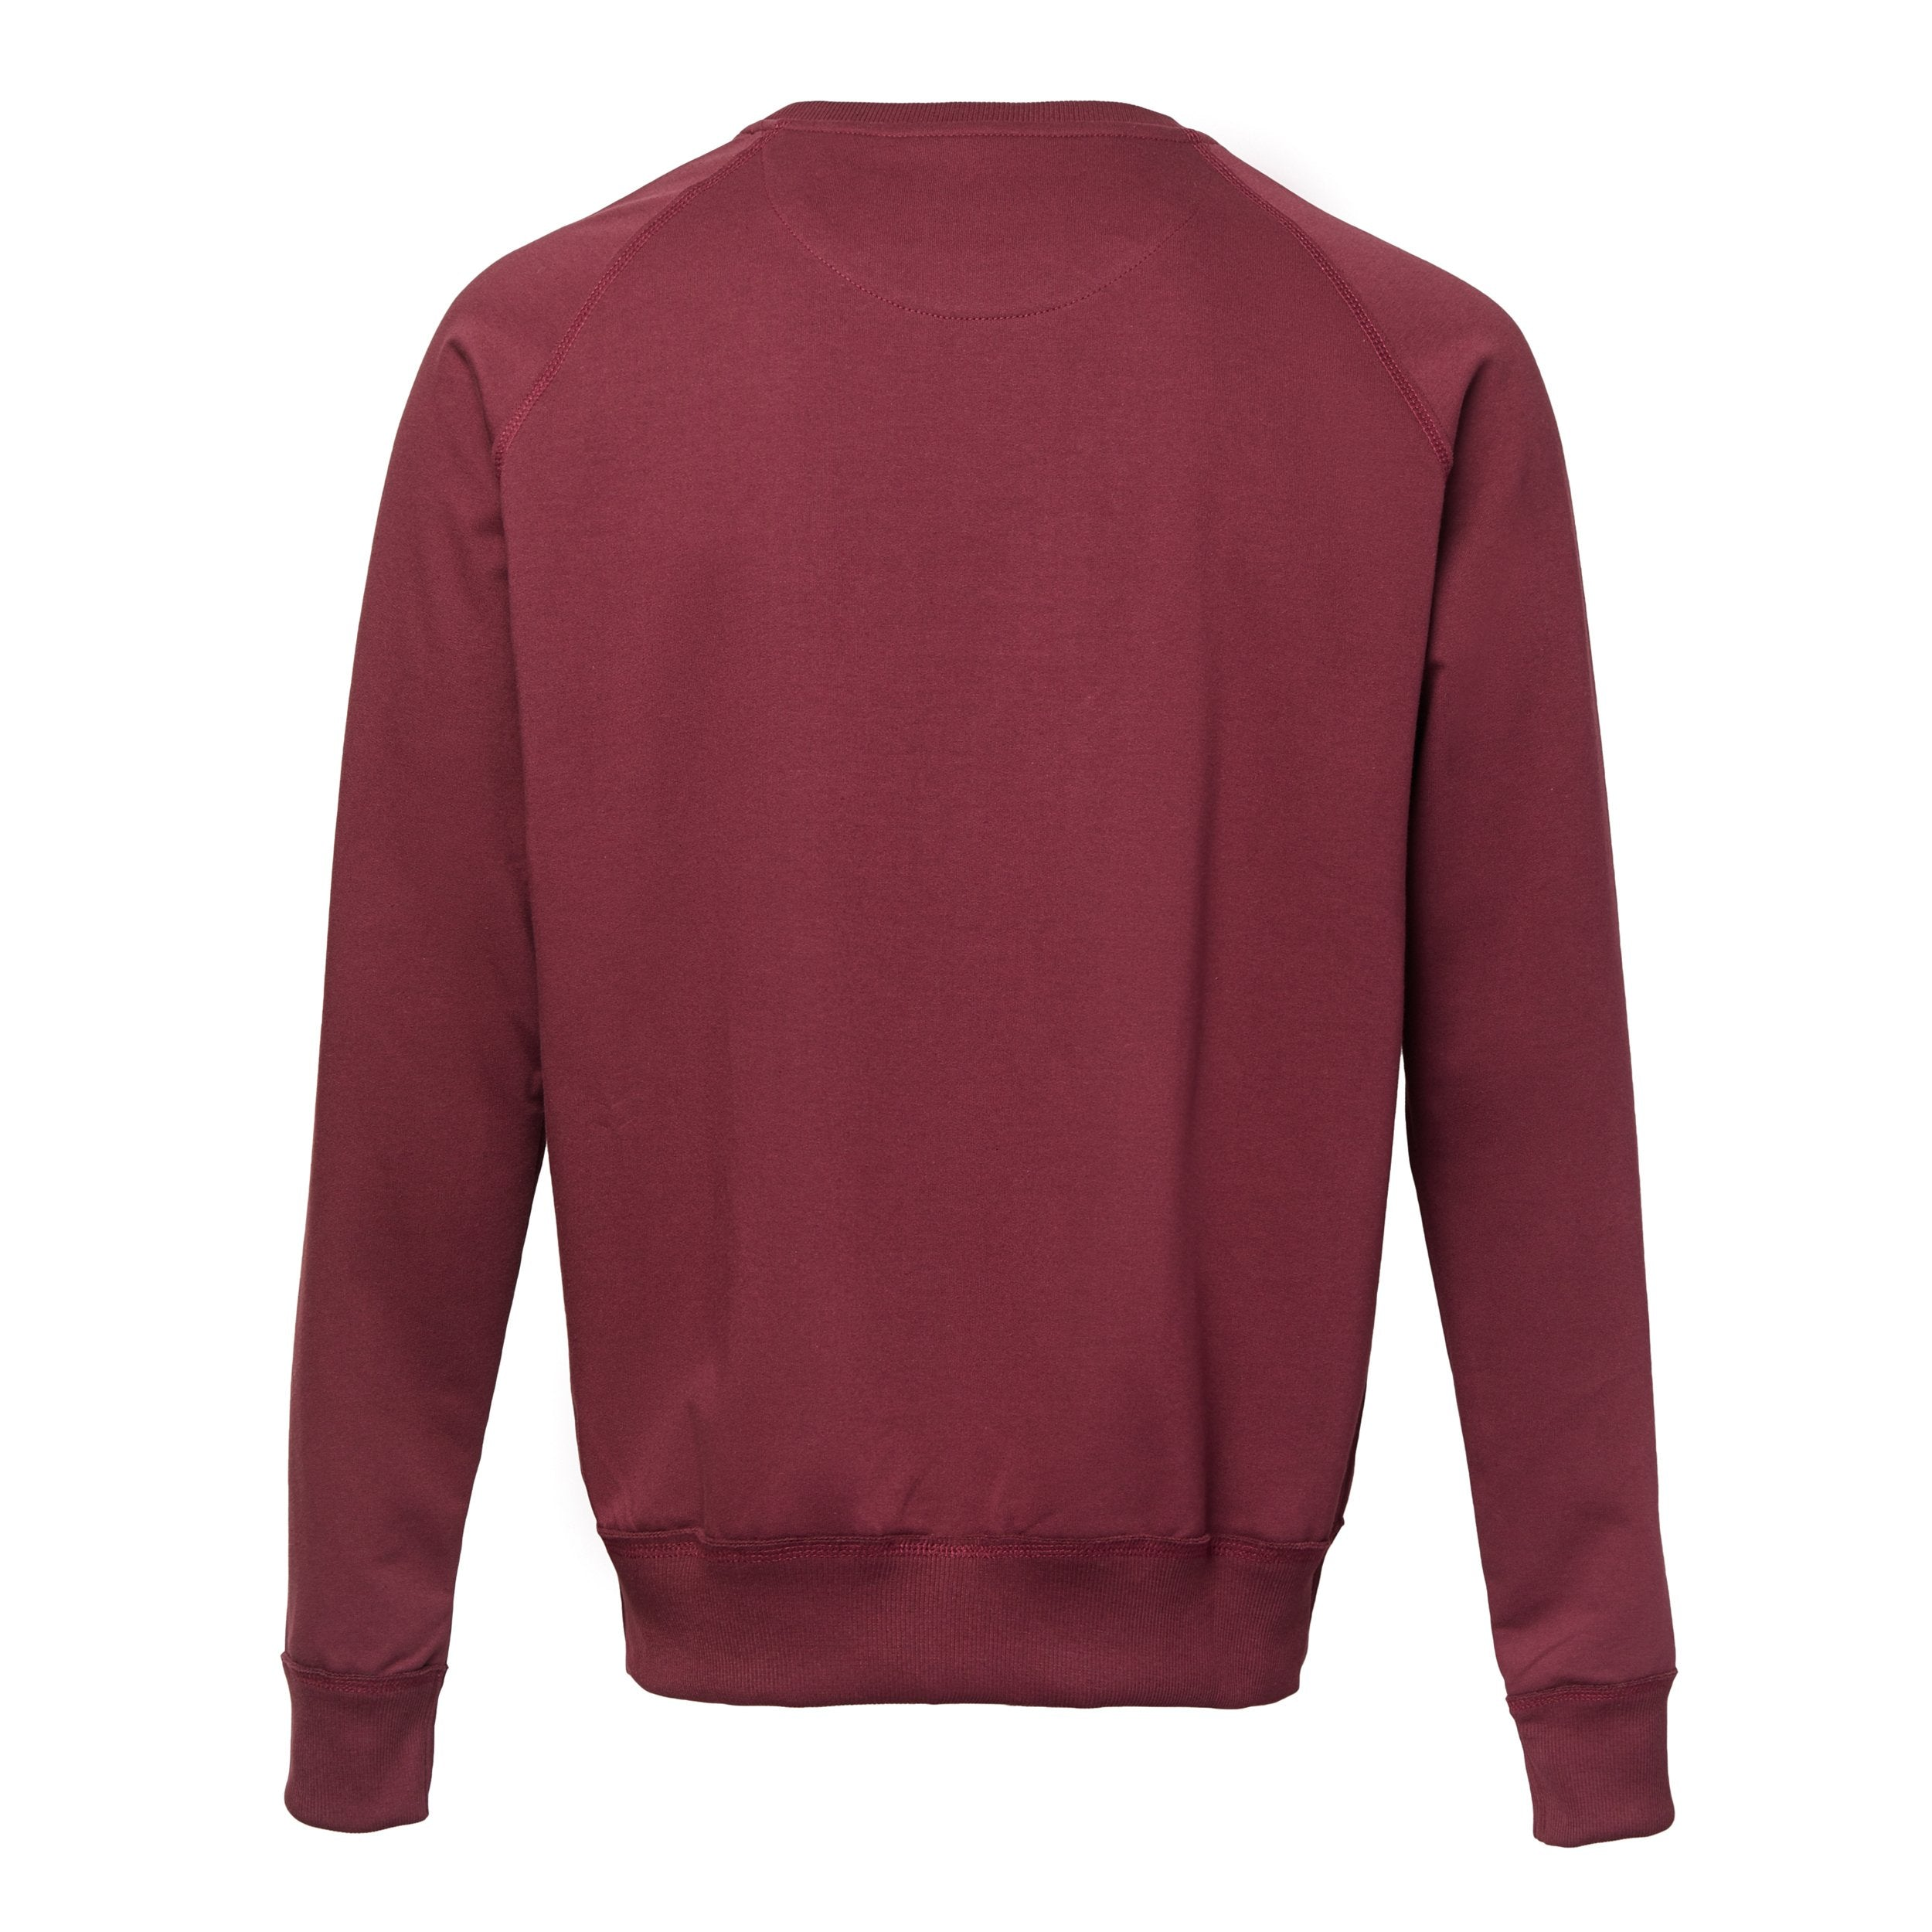 Malmok Slim Fit Cotton Sweatshirt